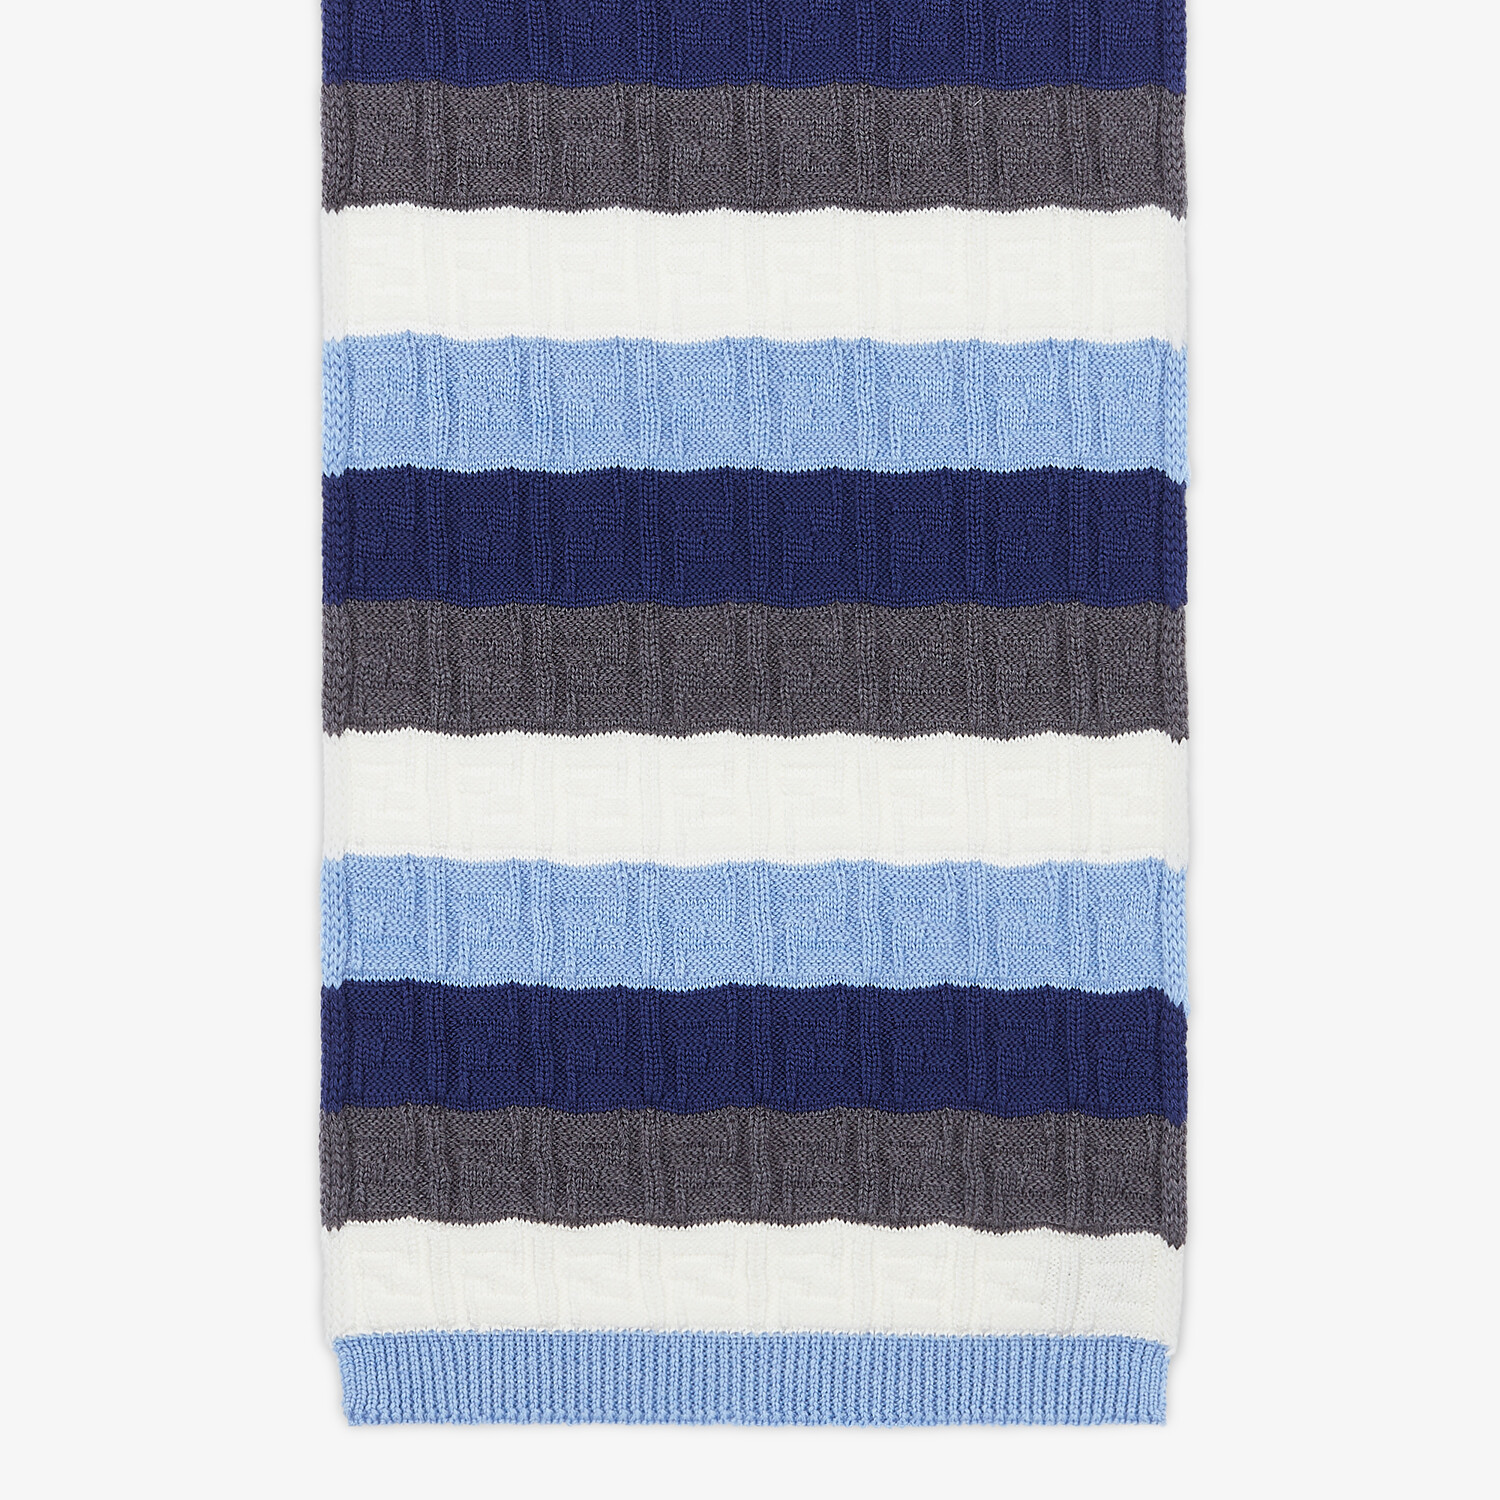 FENDI SCARF - Multicolor wool scarf - view 1 detail